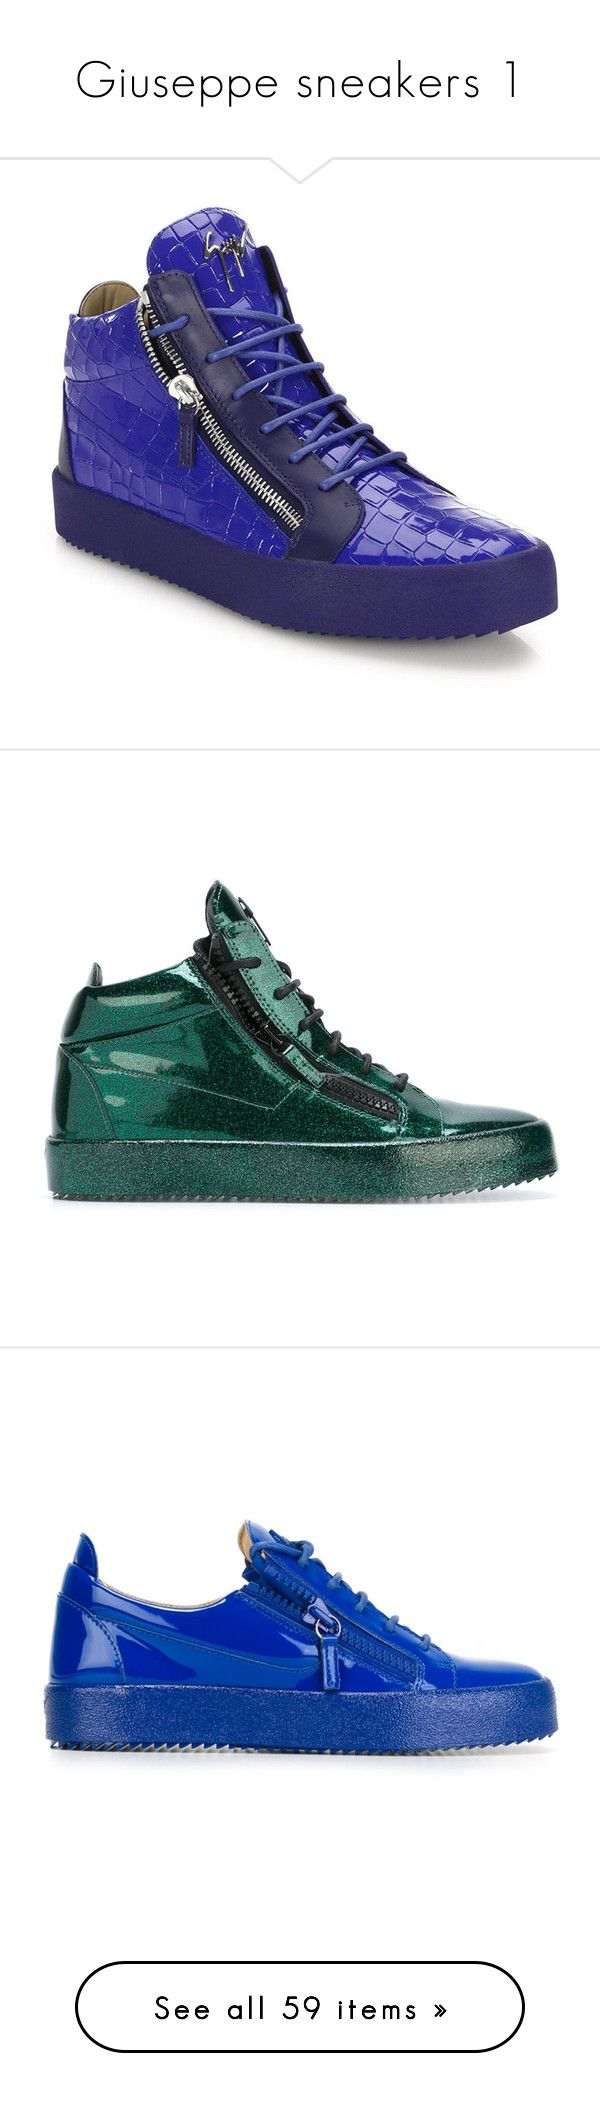 """Giuseppe sneakers 1"" by missy-smallen ❤ liked on Polyvore featuring men's fashion, men's shoes, men's sneakers, apparel & accessories, bluette, mens suede sneakers, mens high top shoes, mens suede shoes, mens lace up shoes and giuseppe zanotti mens sneakers"